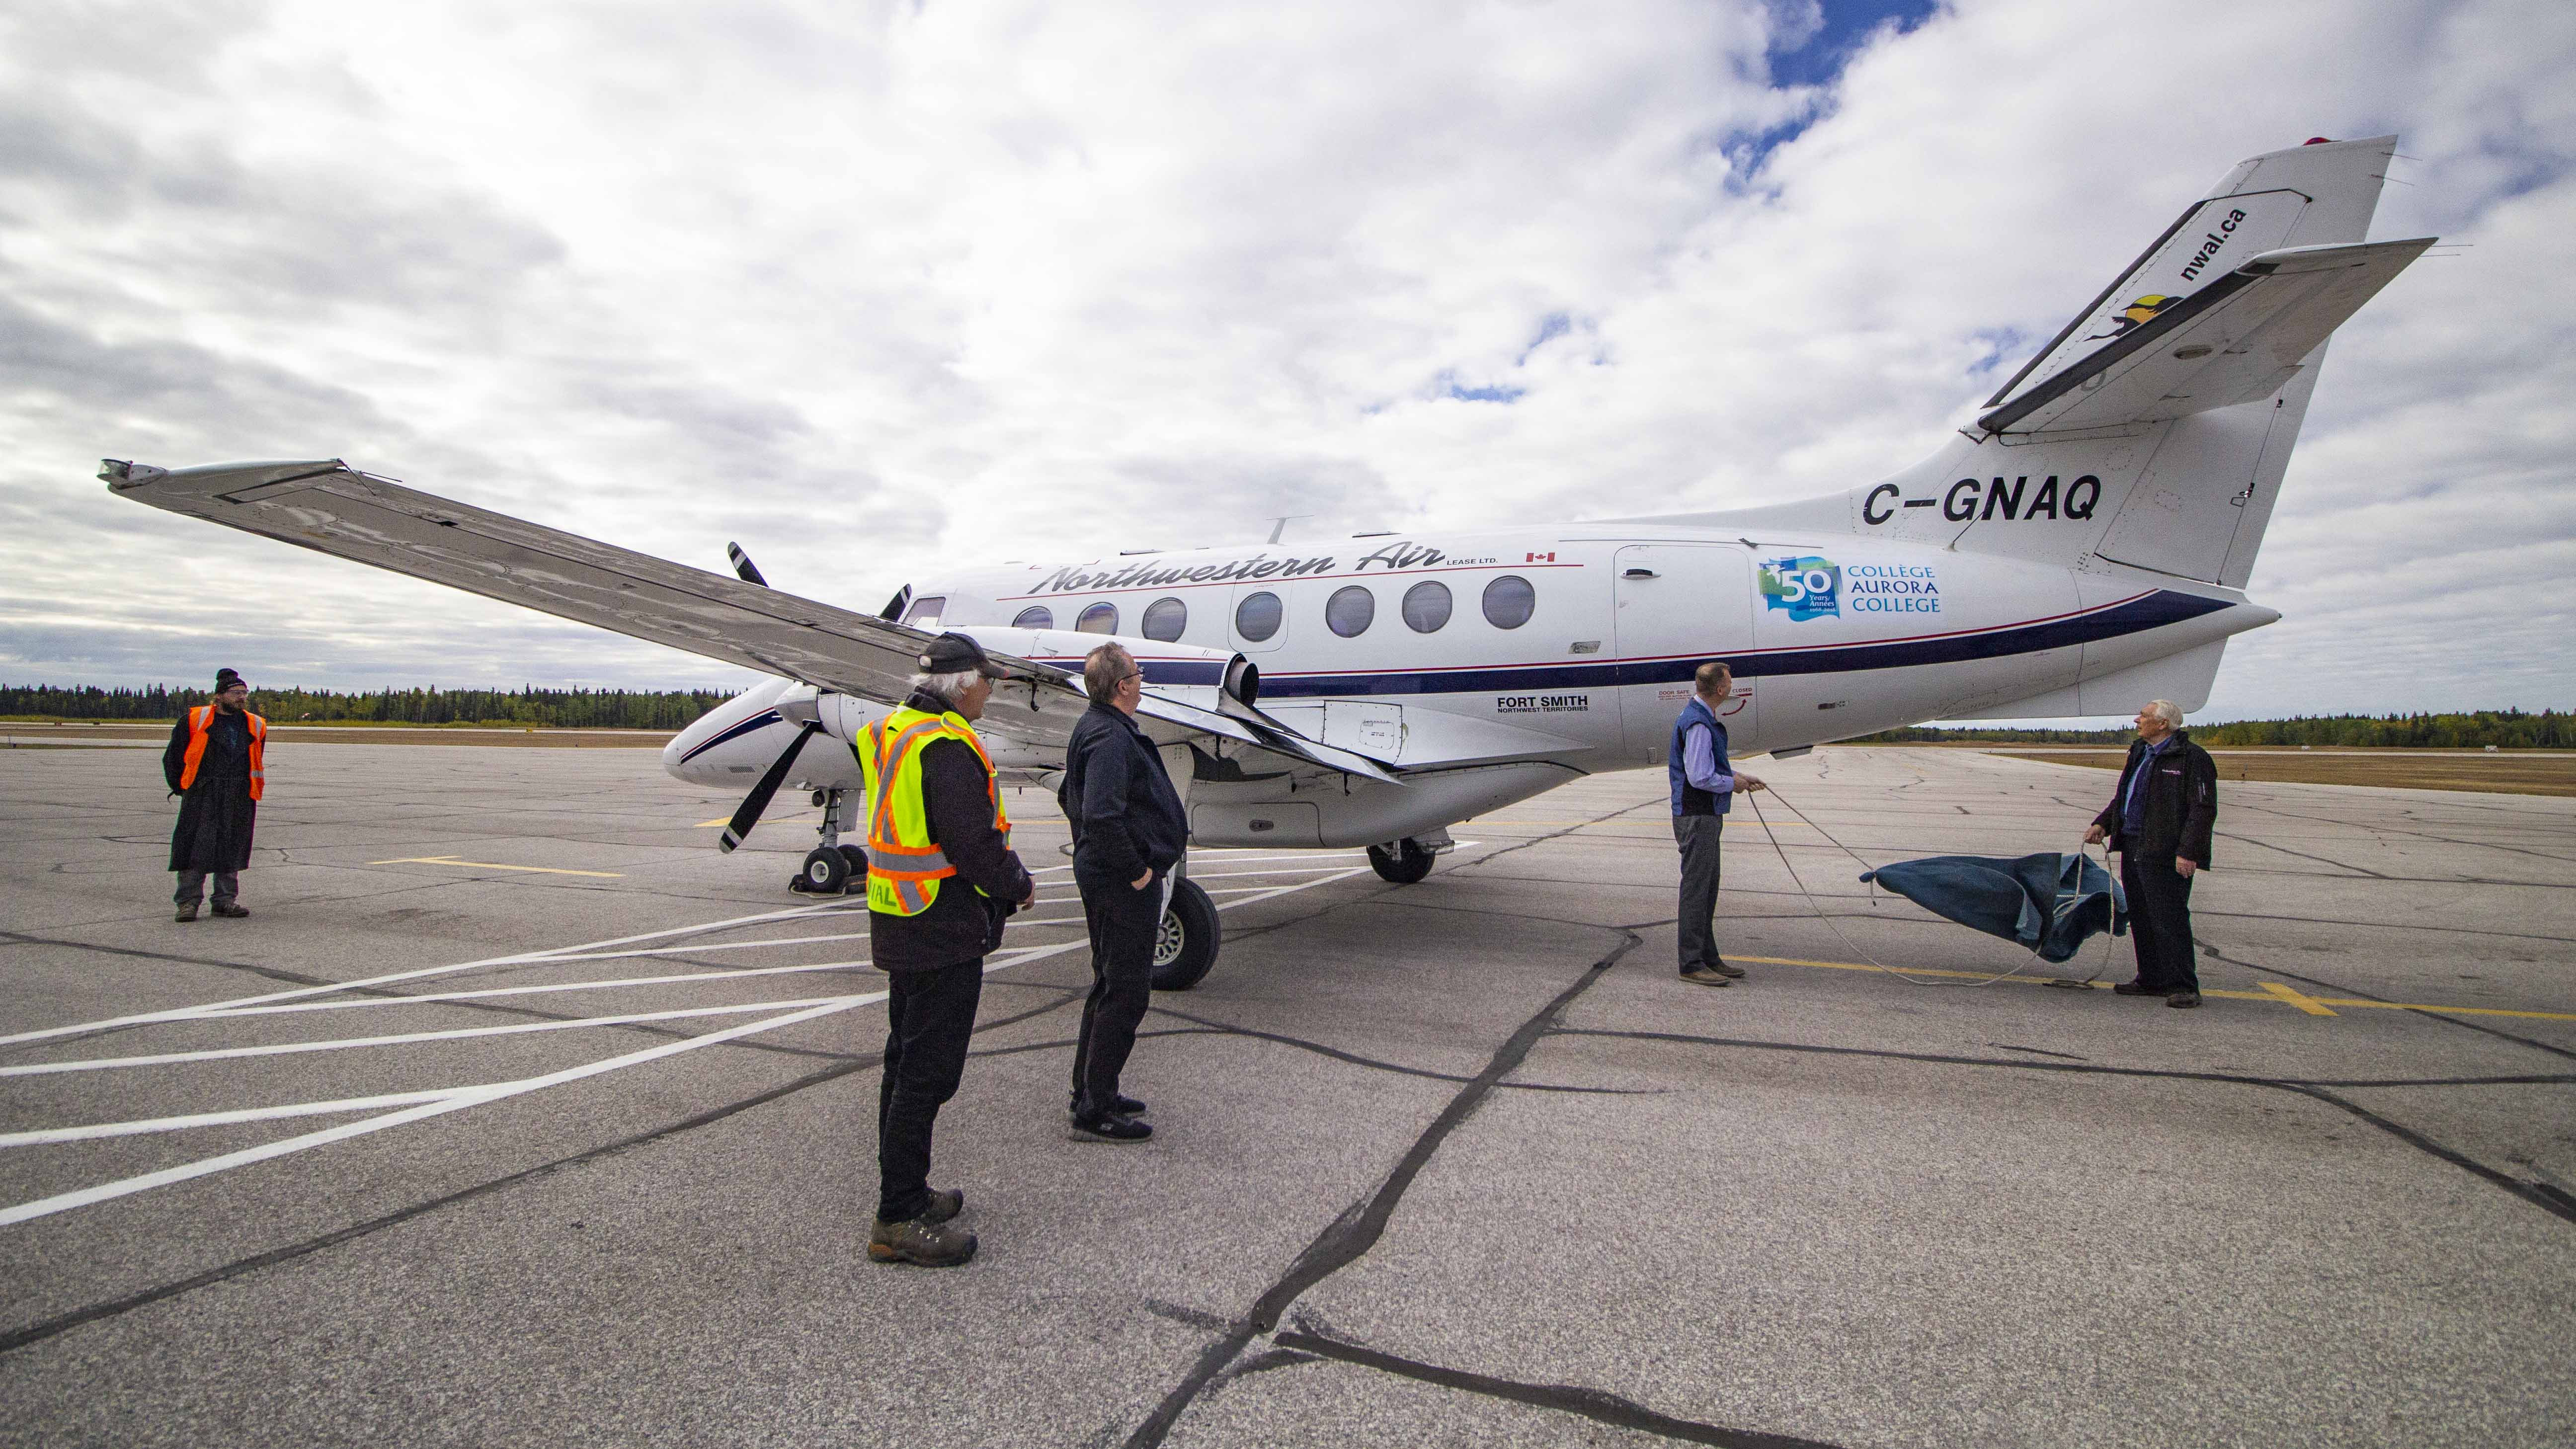 Terry Harrold, president and founder of Northwestern Air Lease, far right, and Jeff O'Keefe, interim president of Aurora College, reveal the college's 50th anniversary logo on Jetstream as other Northwestern employees look on. Sarah Pruys/Cabin Radio